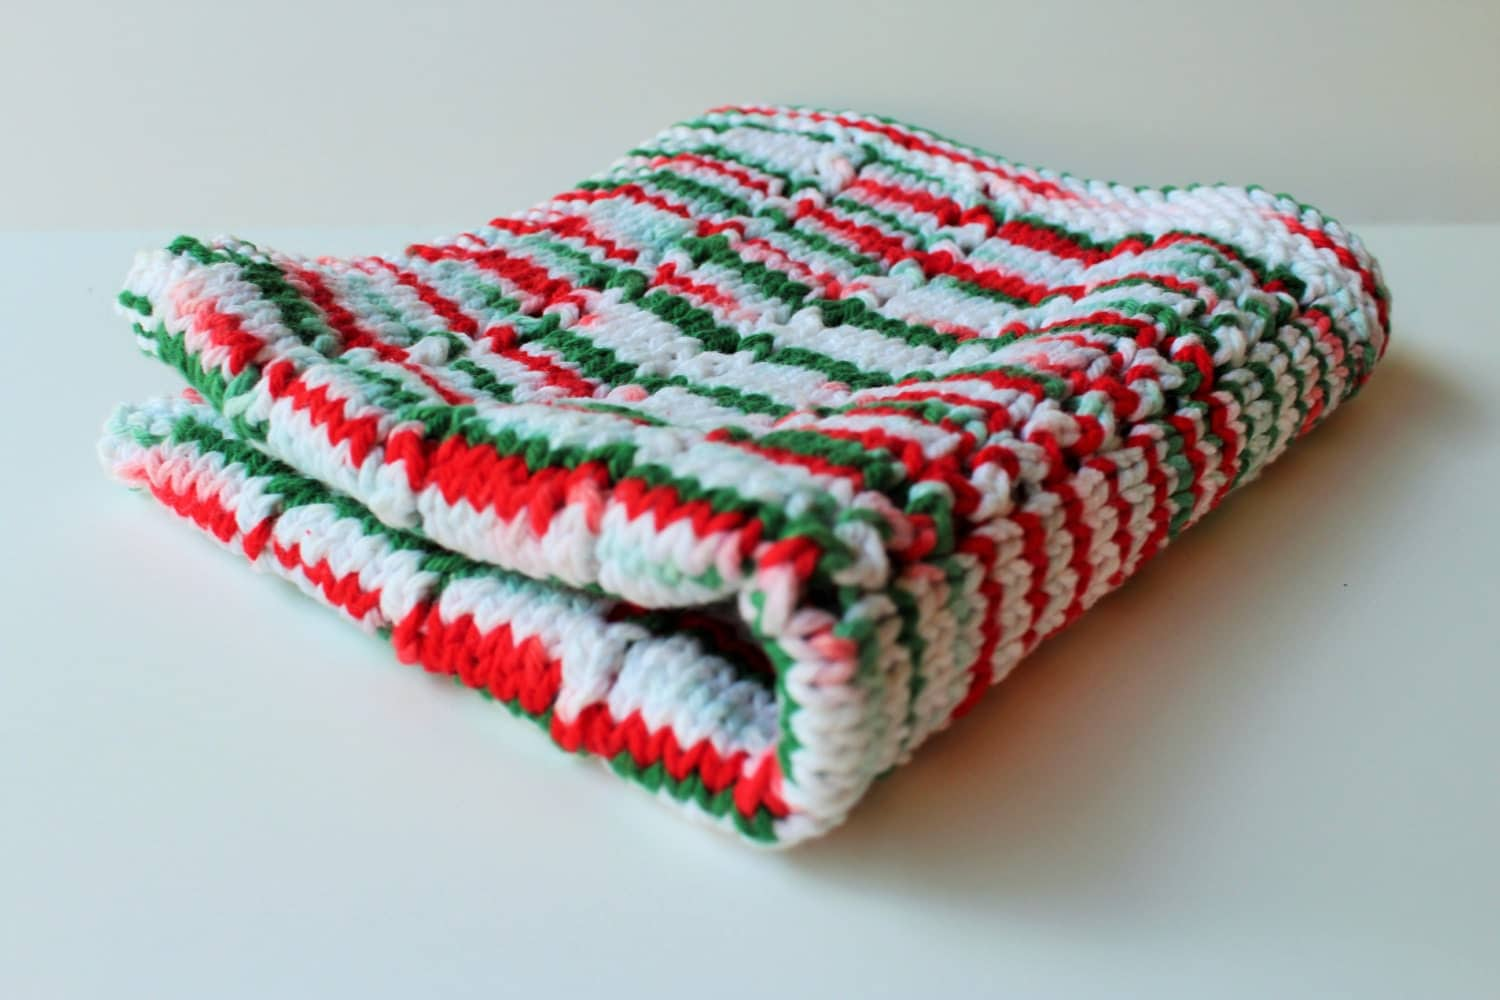 Knitted Cotton Dish Towel Pattern : Knit Dish Towel Christmas Kitchen Towel Cotton Eyelet Dish